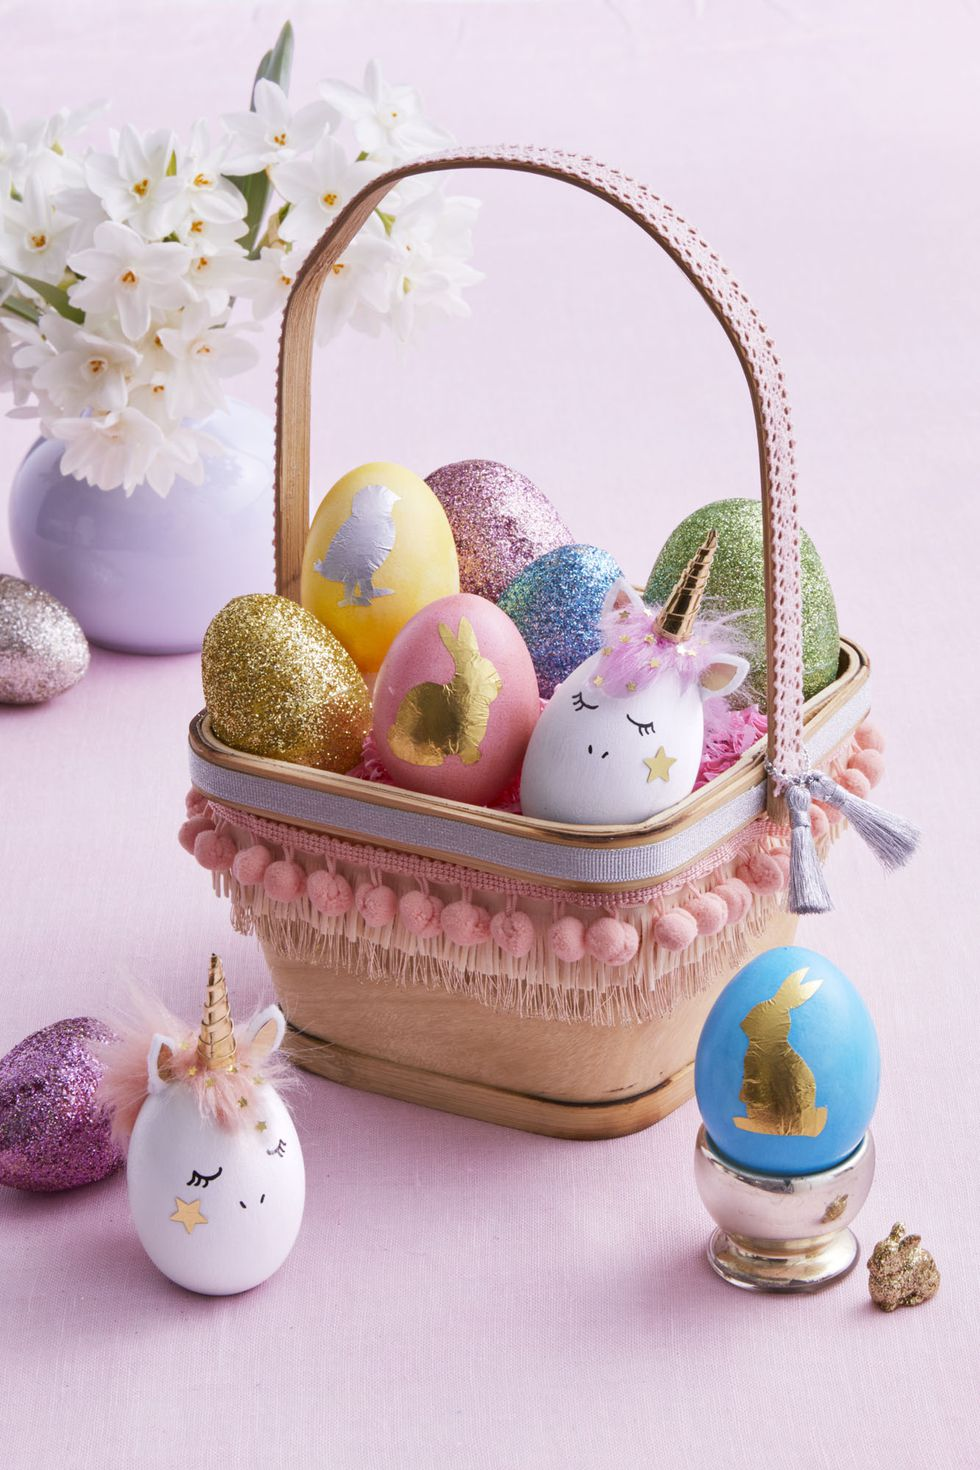 easter-egg-crafts-basket-wdy-0418-1520289813